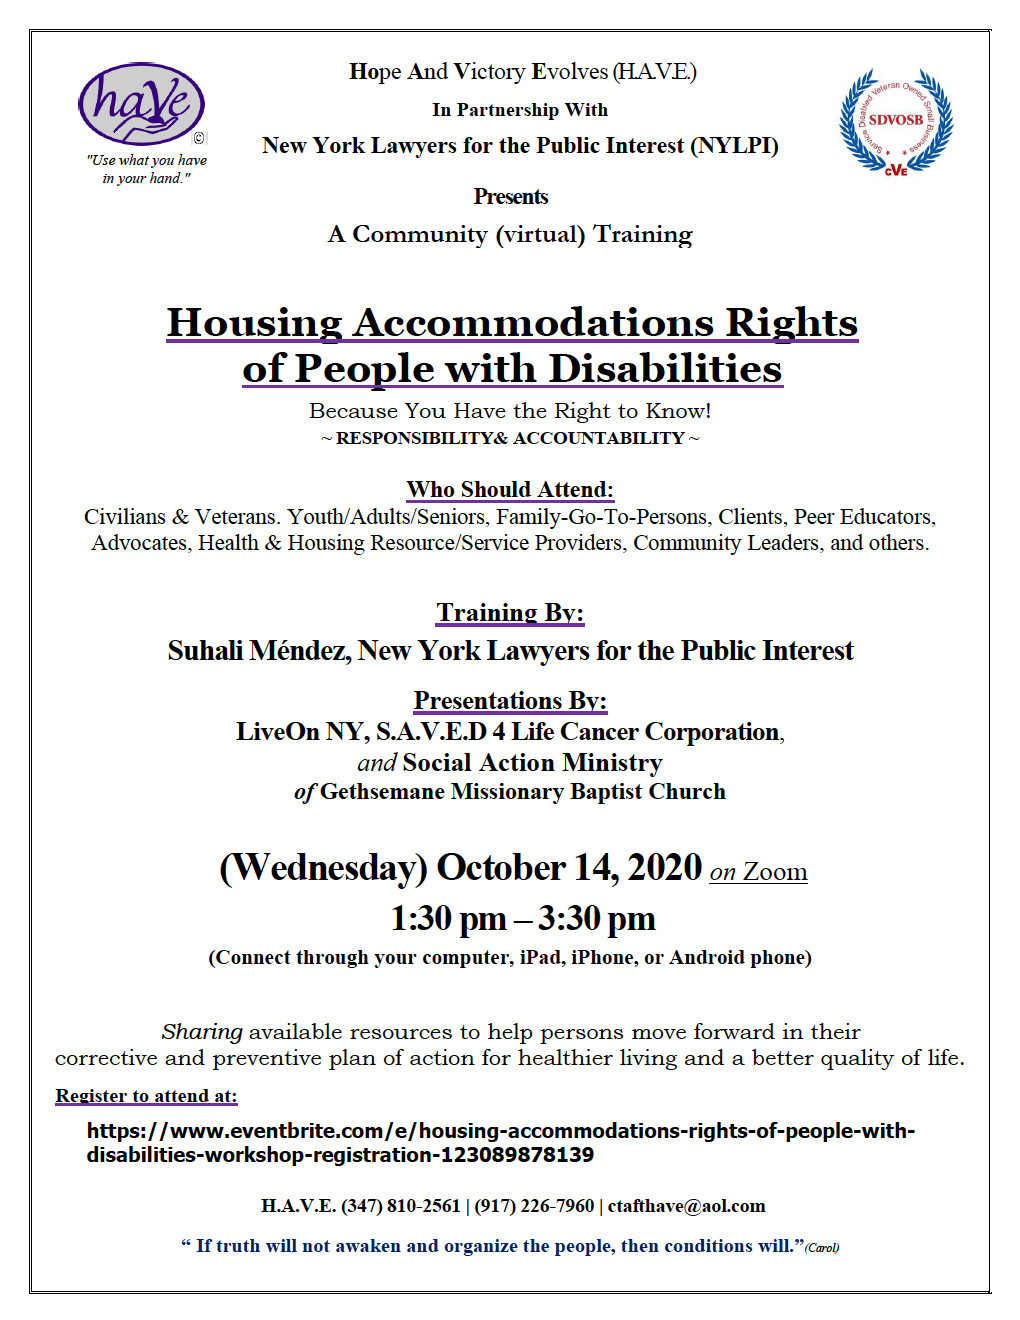 On Wednesday, October 14th, NYLPI will be presenting at an upcoming presentation hosted by Hope and Victory Evolves (HAVE). The topic will be the Housing Accommodations Rights of People with Disabilities. Please register for this free training at https://www.eventbrite.com/e/housing-accommodations-rights-of-people-with-disabilities-workshop-registration-123089878139. Please refer to the flyer for additional details.